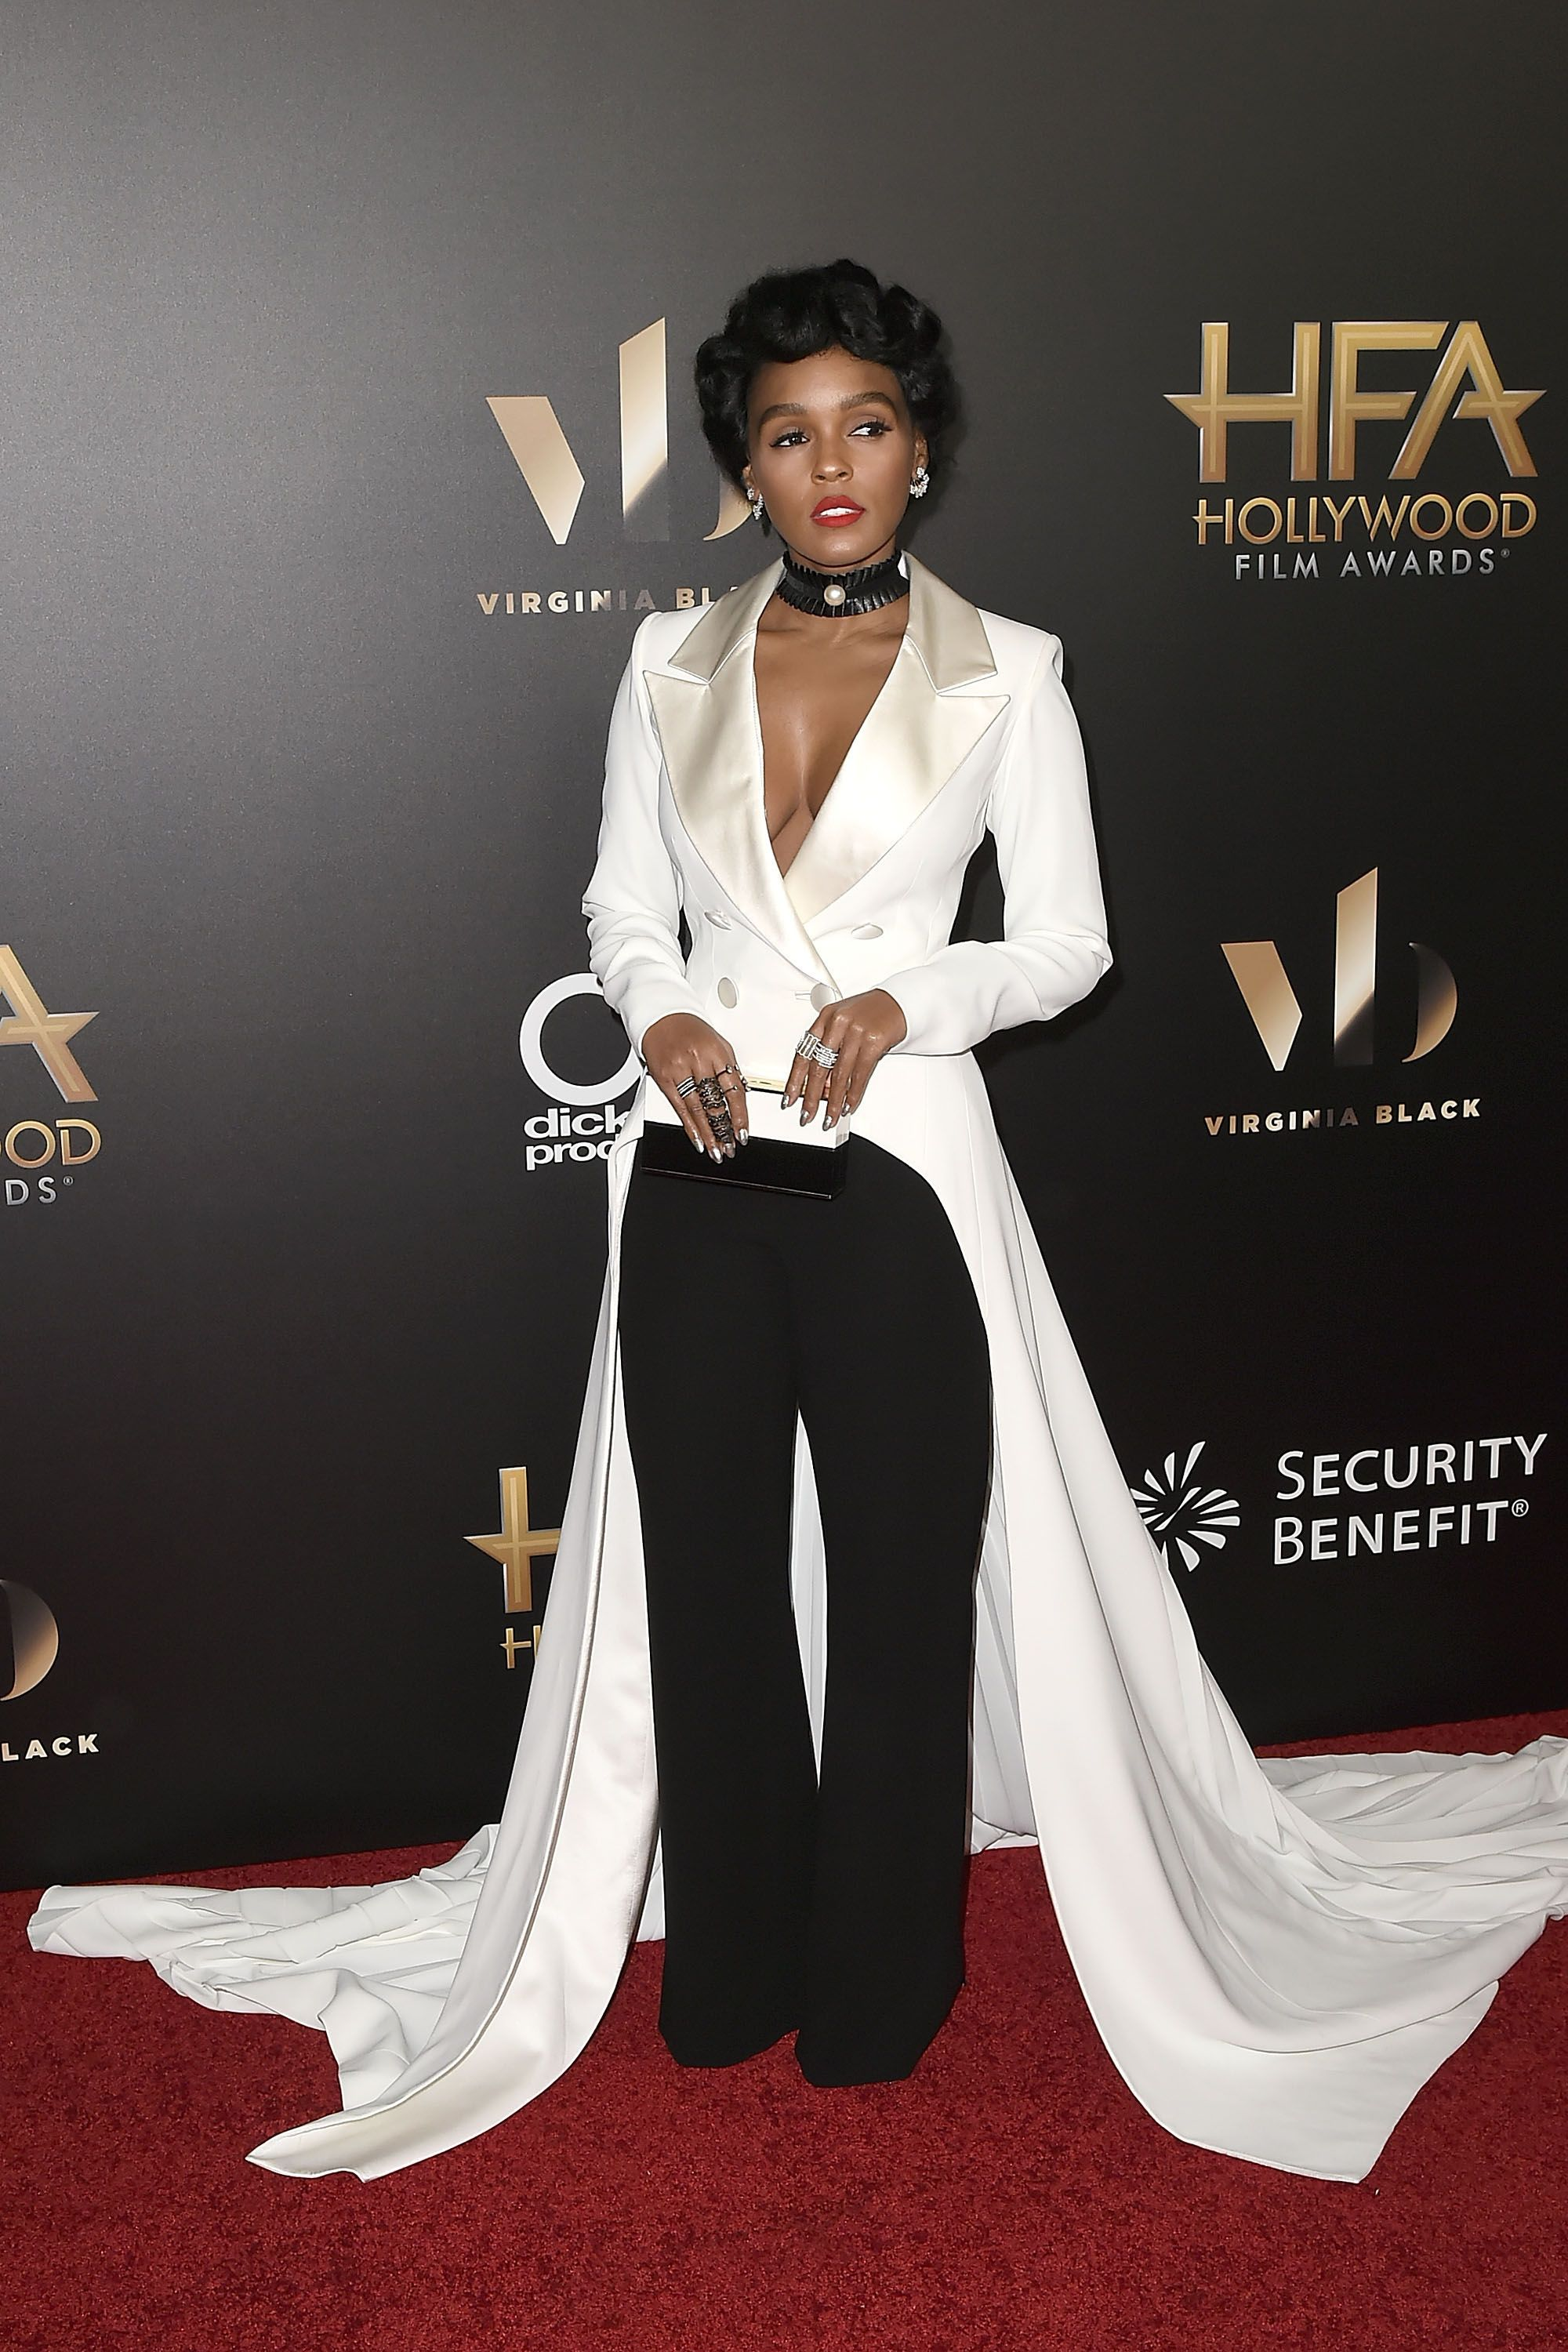 "<p>Janelle Monae<span class=""redactor-invisible-space""></span></p>"